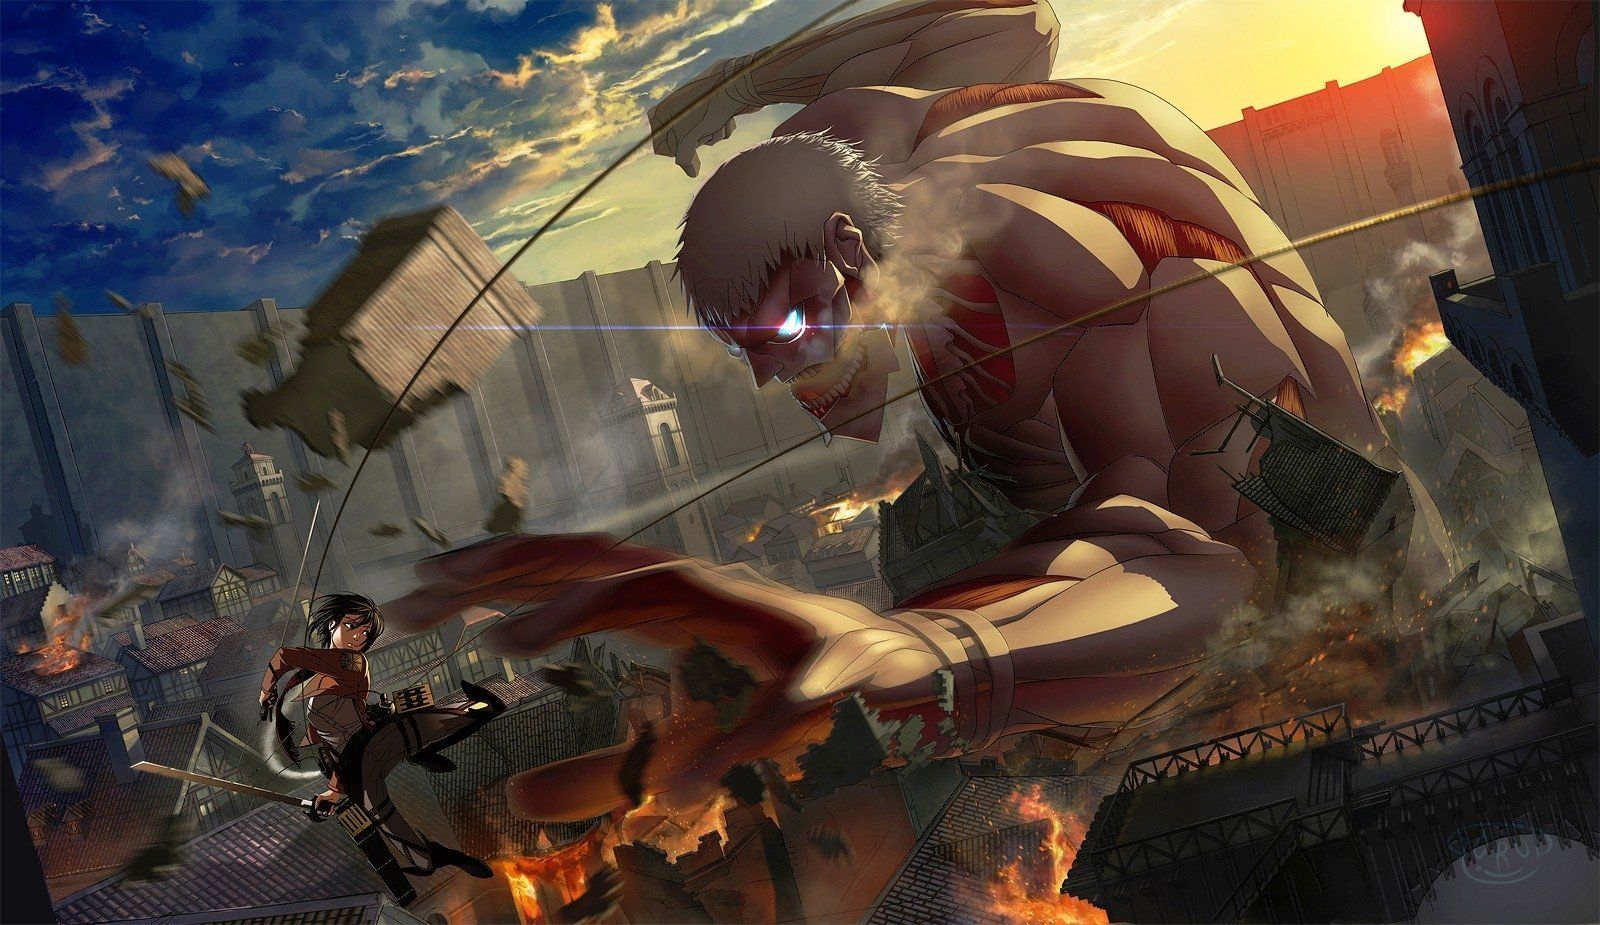 Attack On Titan Anime Wallpapers Top Free Attack On Titan Anime